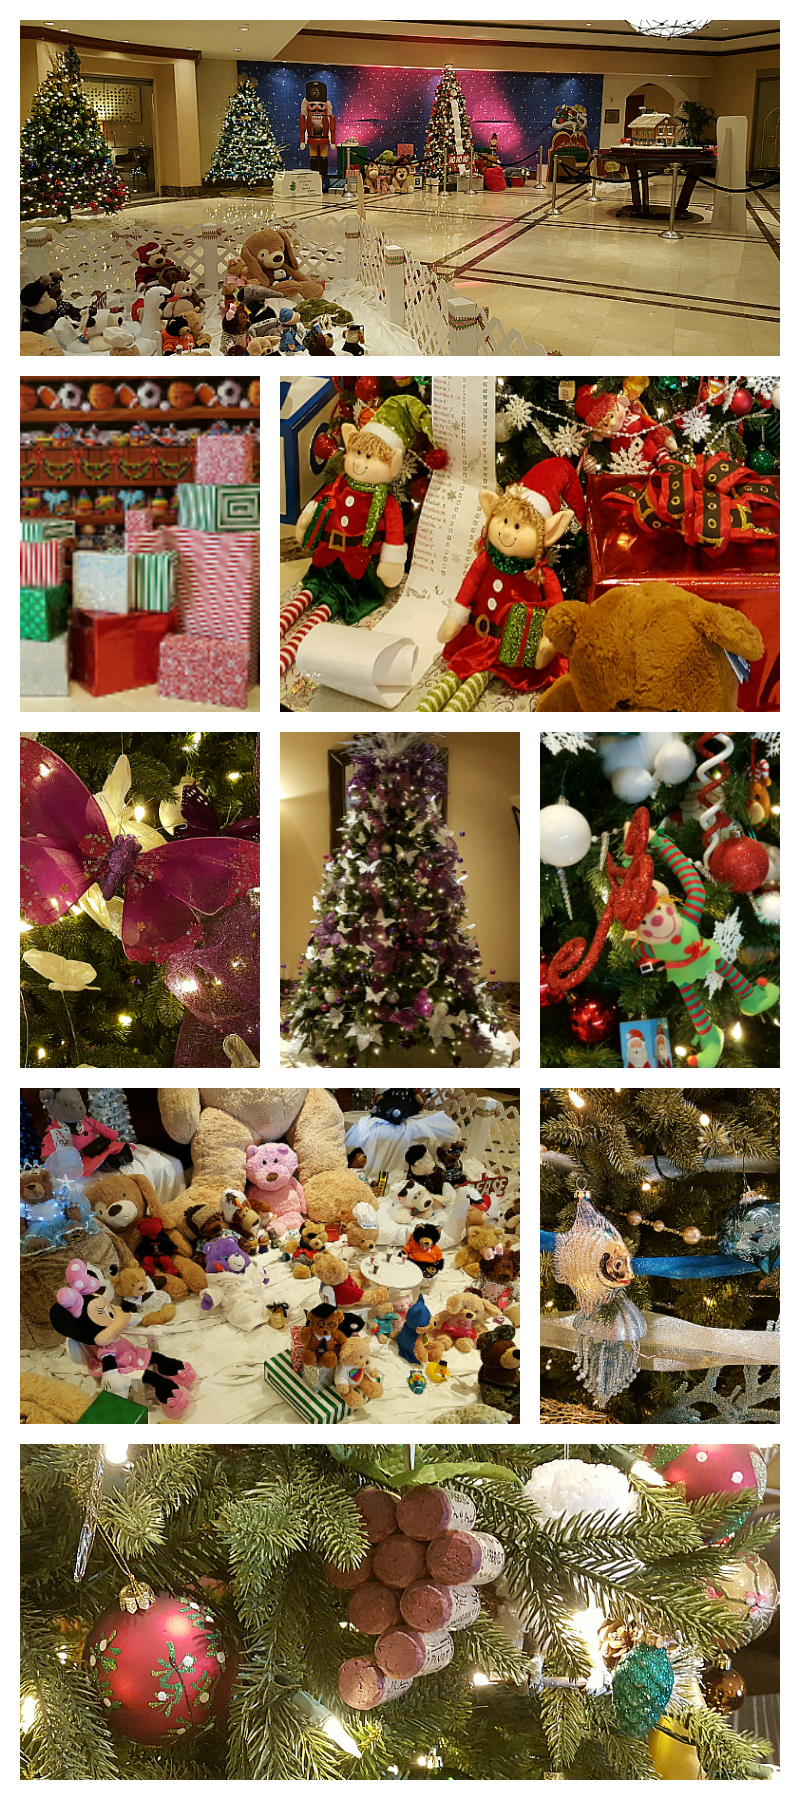 Holiday Activities at The Fairmont Newport Beach